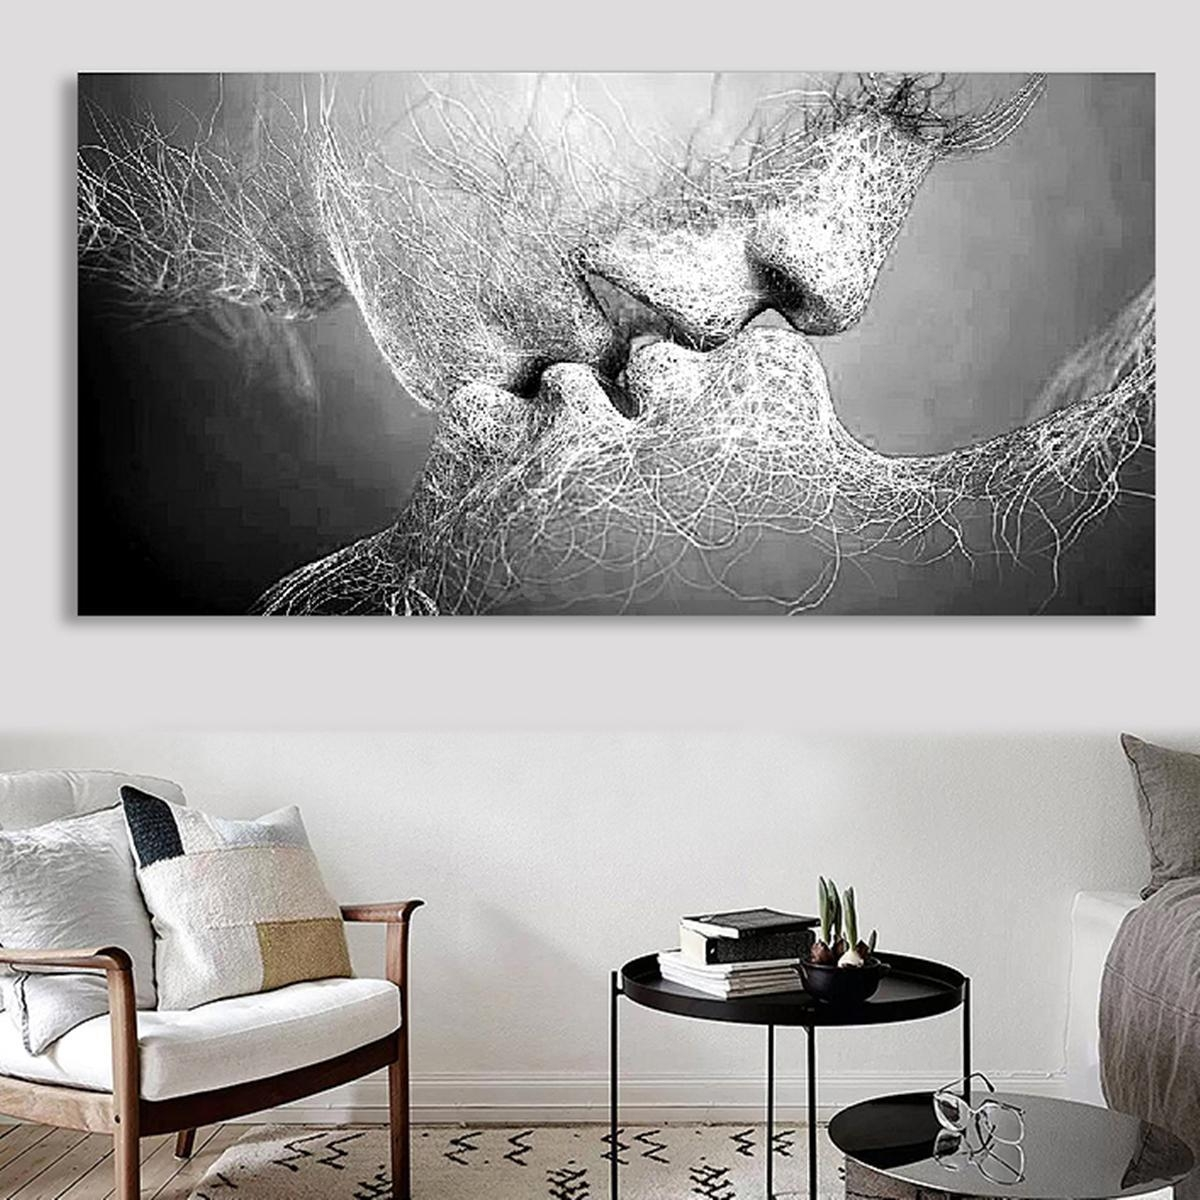 Black & White Love Kiss Abstract Art On Canvas Painting Wall Art Regarding Black Love Wall Art (Image 1 of 20)